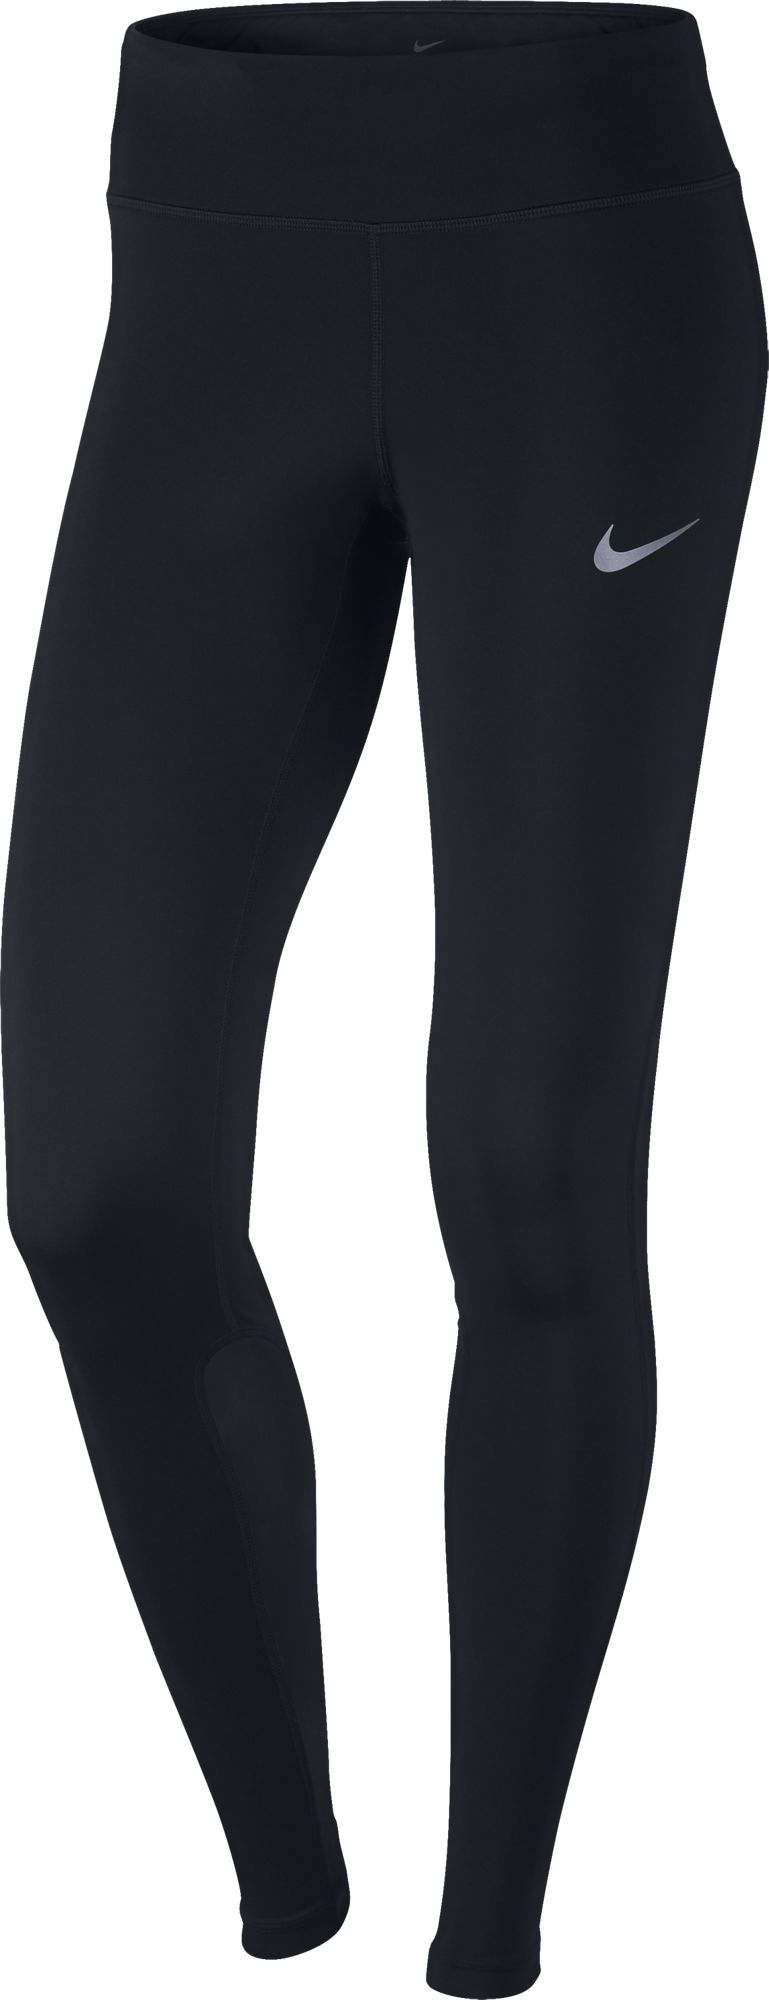 Nike Power Epic Tight W